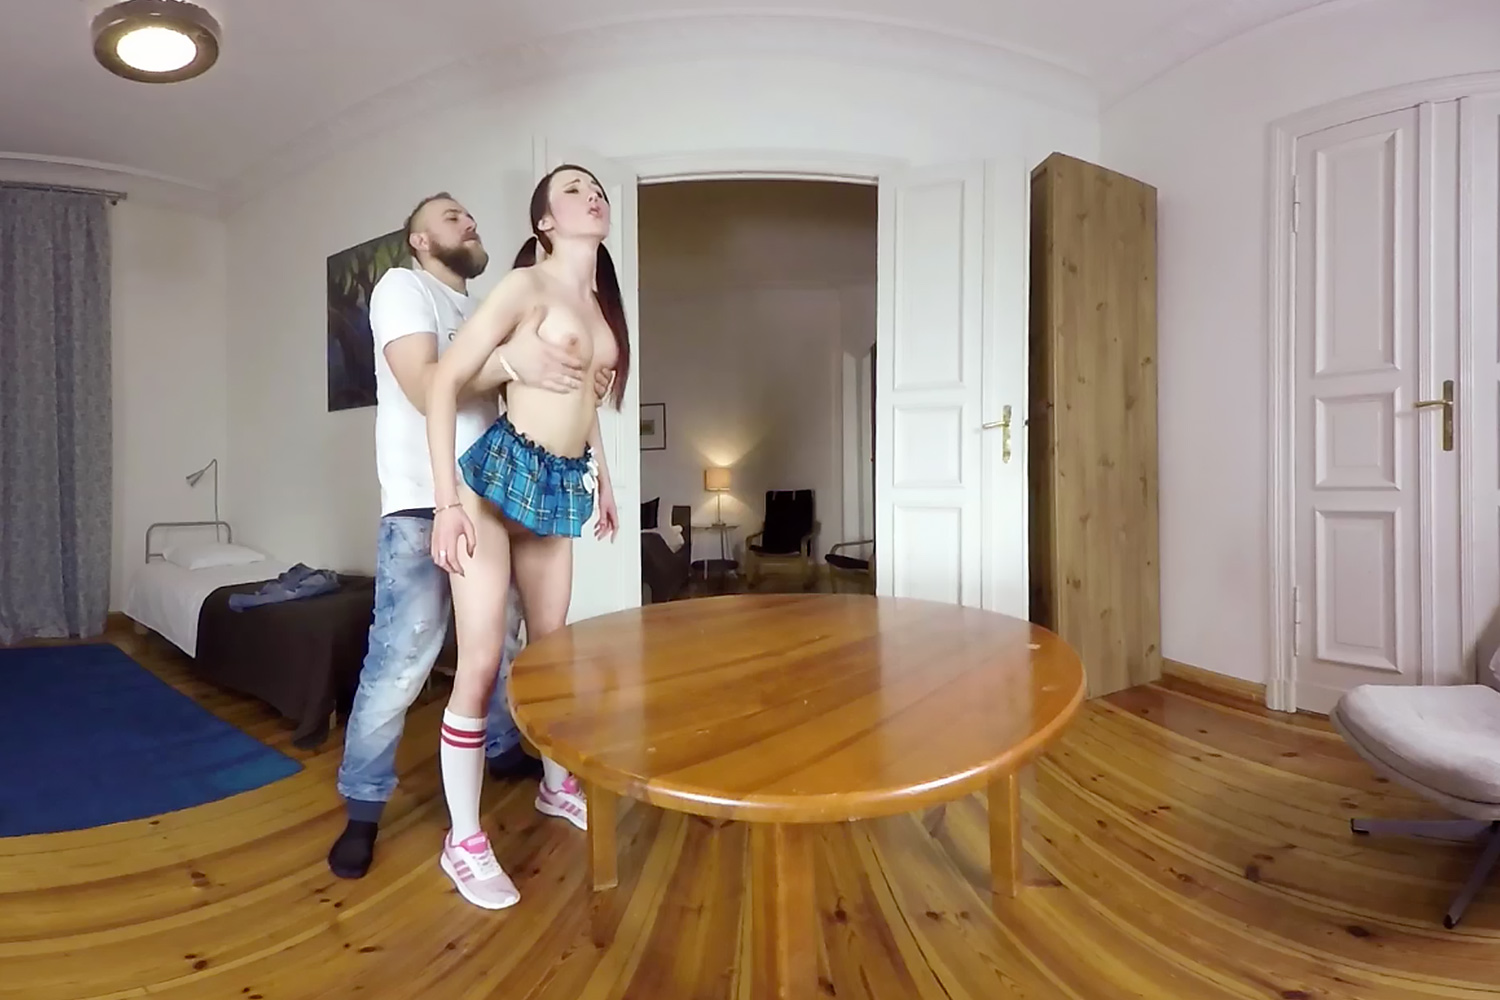 Breakfast on the Table VR Porn Video